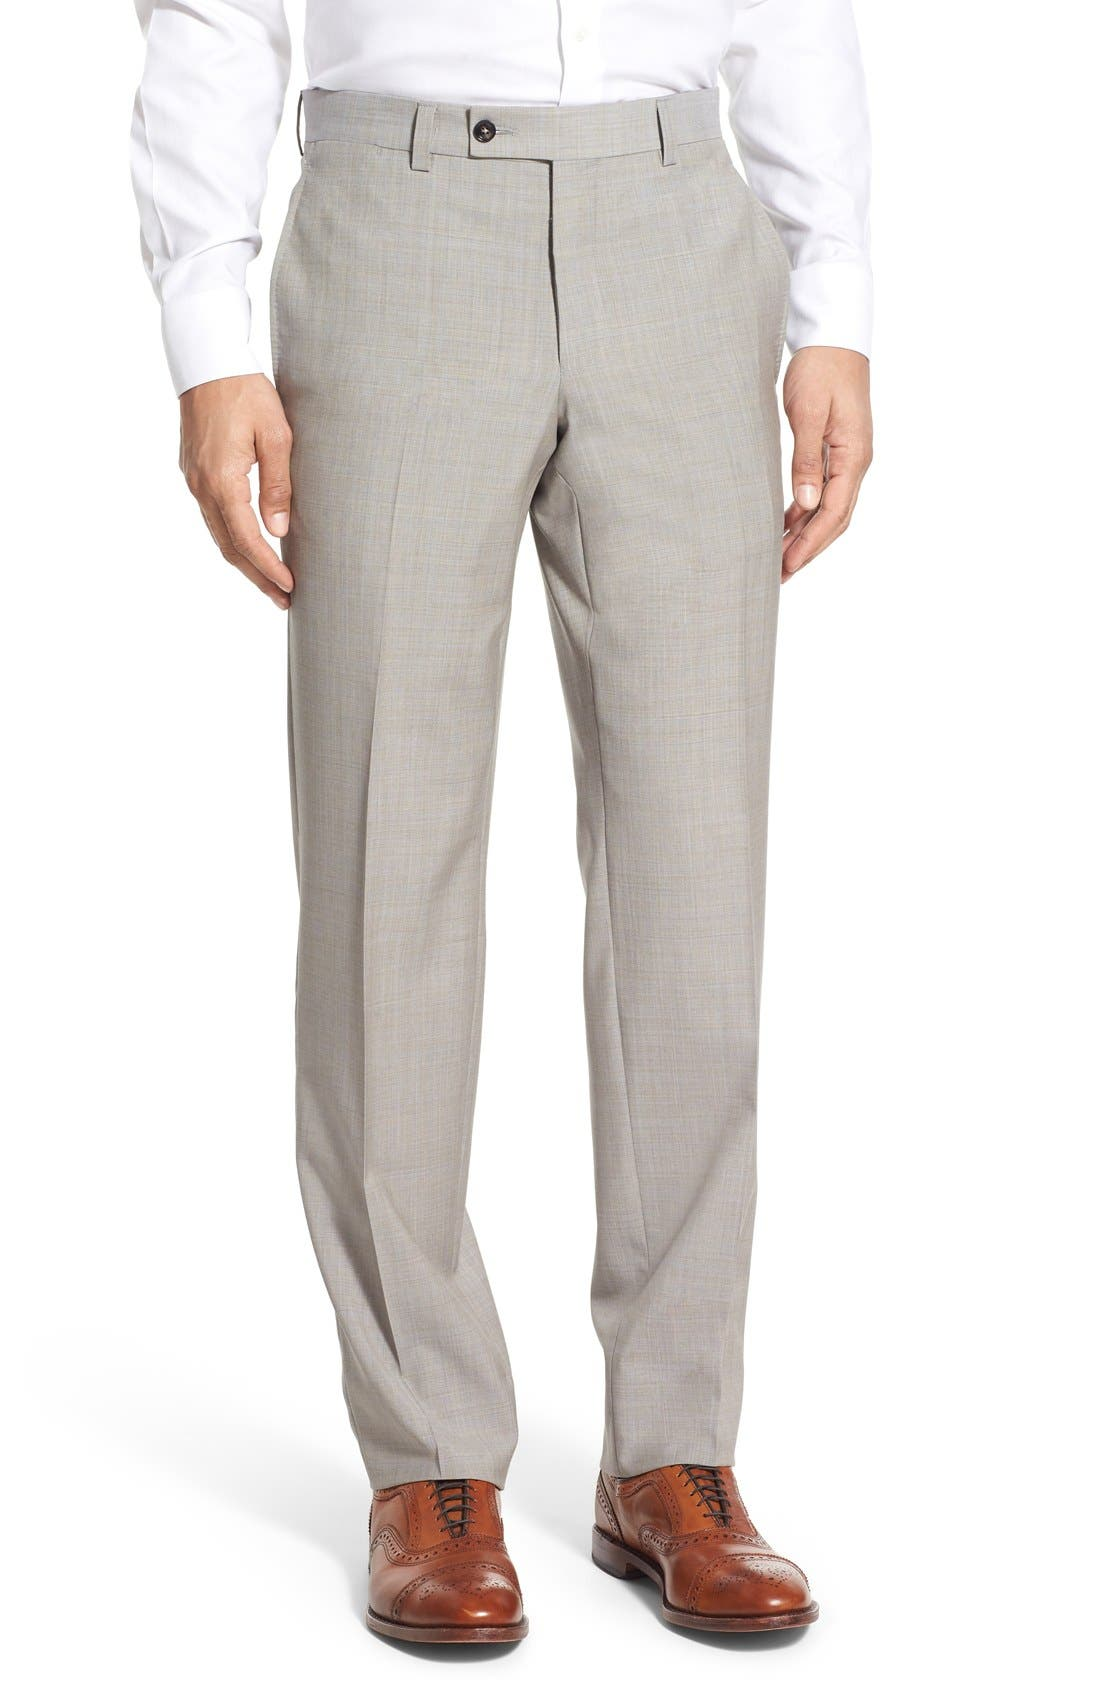 'Jefferson' Flat Front Solid Wool Trousers,                             Main thumbnail 1, color,                             270